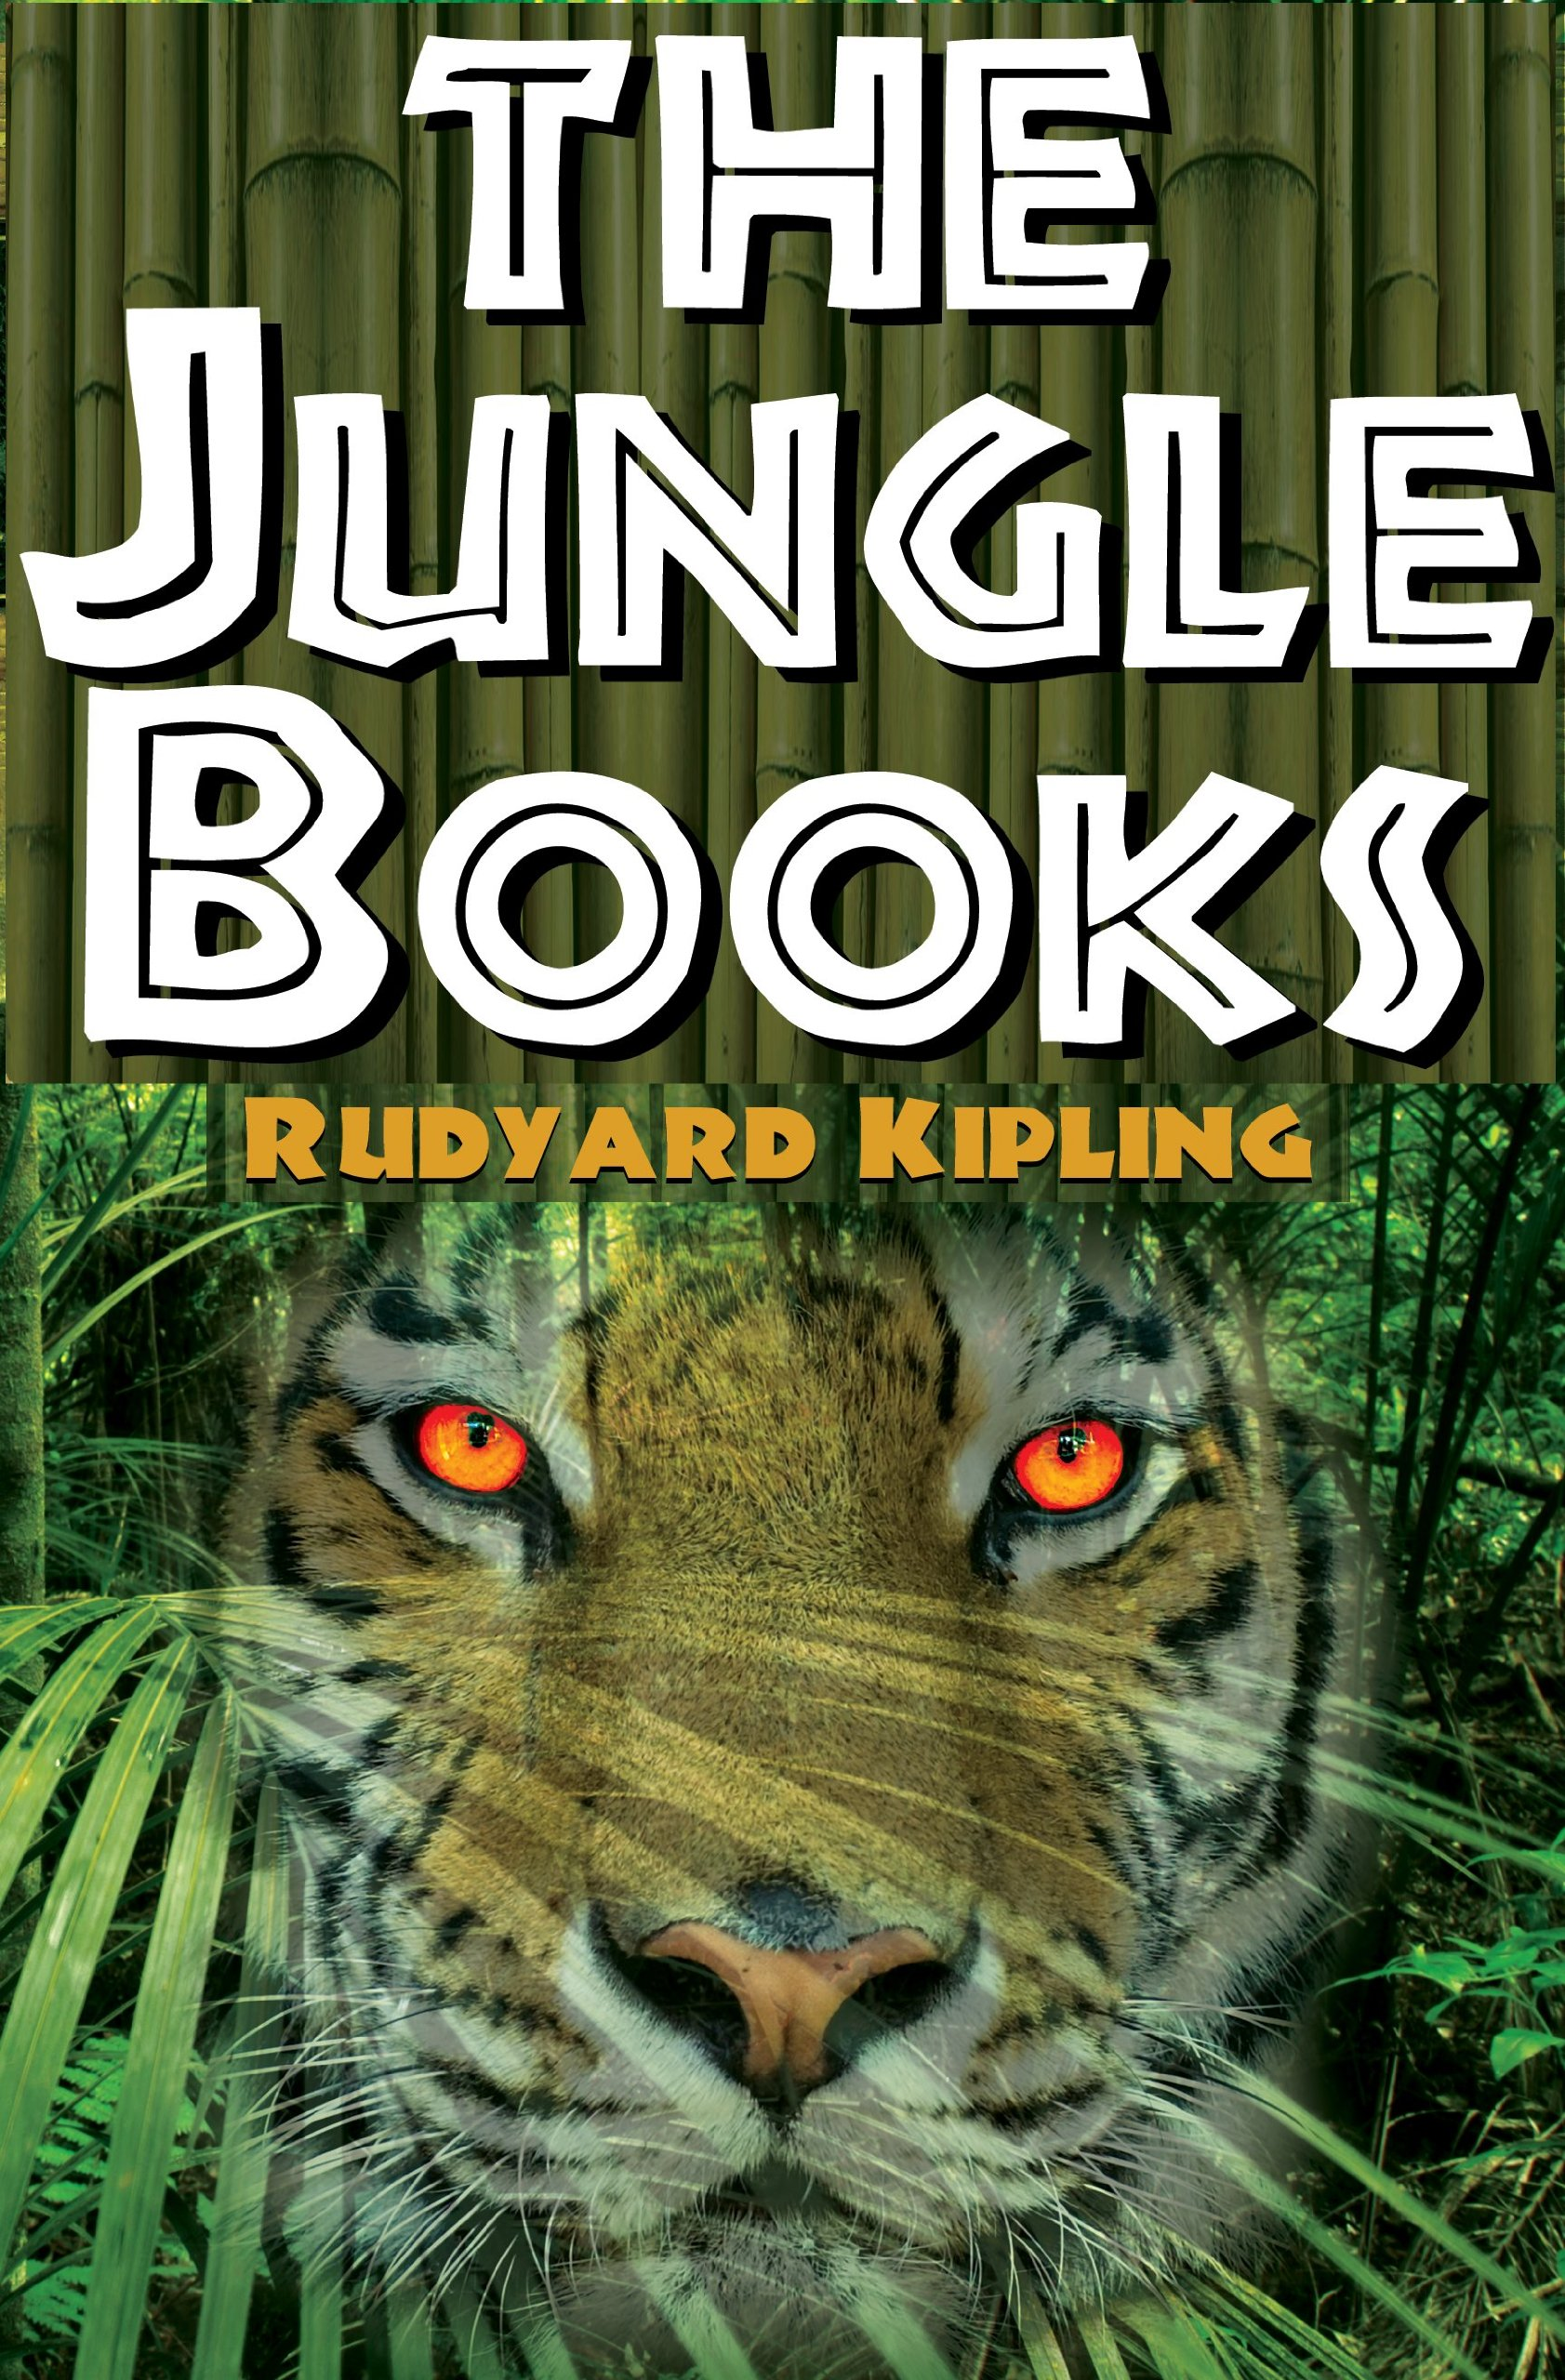 The Jungle Books ISBN-13 9780980060584